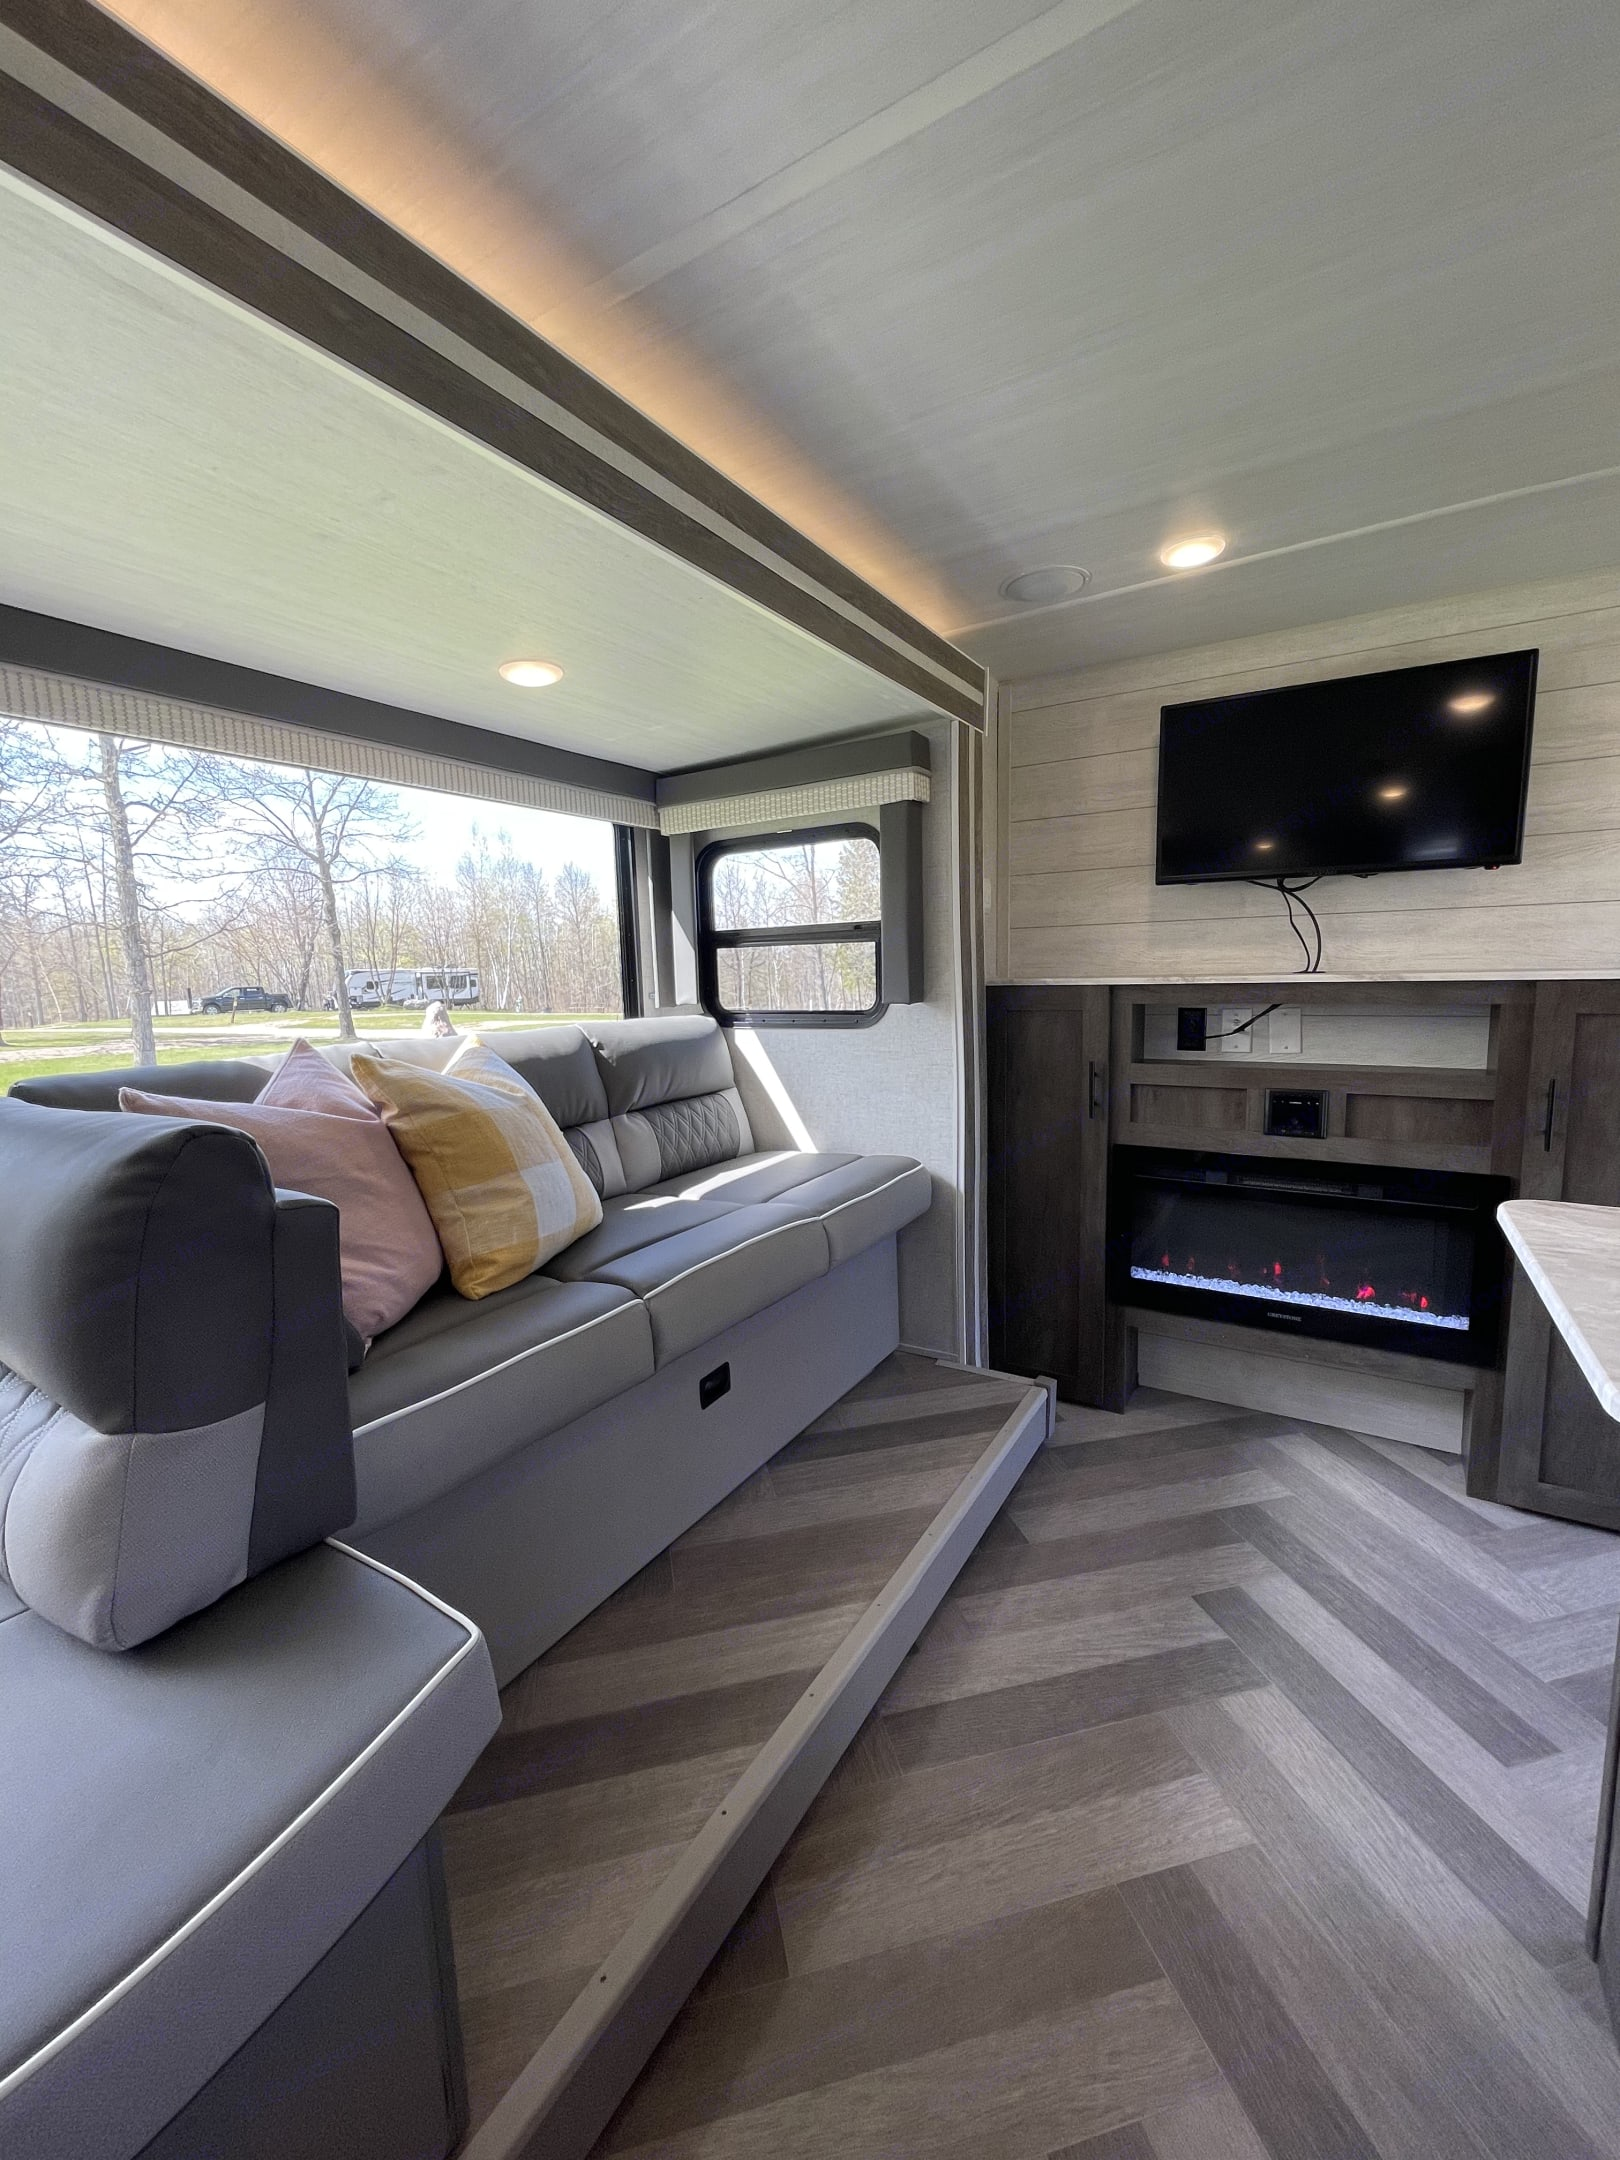 Bring some DVD's and have a relaxing movie night. The sofa also folds down into a bed.. Forest River Salem Cruise Lite 2021